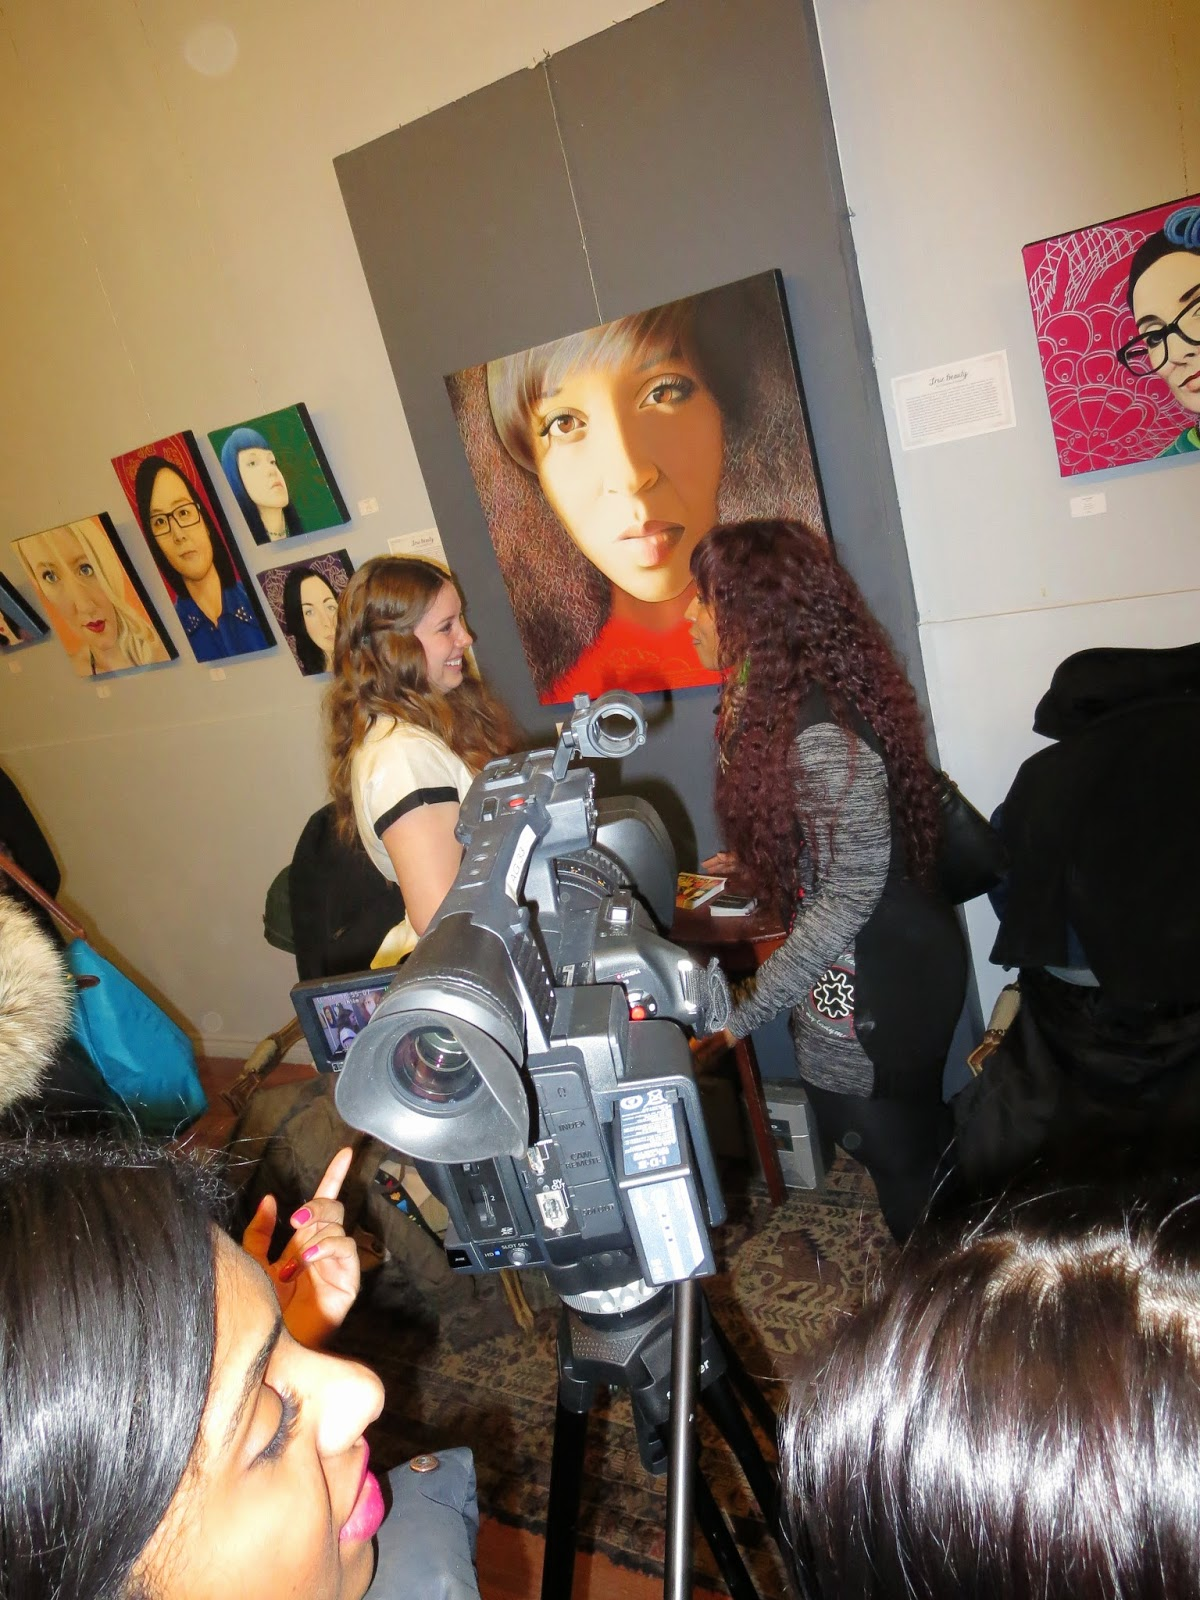 True Beauty, Beauty Art, Beauty Paintings, art, artwork, artist, beauty artist, malinda prudhomme, toronto portrait artist, ben navaee gallery, portrait, portrait painting, emerging toronto artist, art opening, opening night, toronto events, snap, video, art show, toronto art exhibition, solo art exhibition, malinda, realism, realistic portraiture